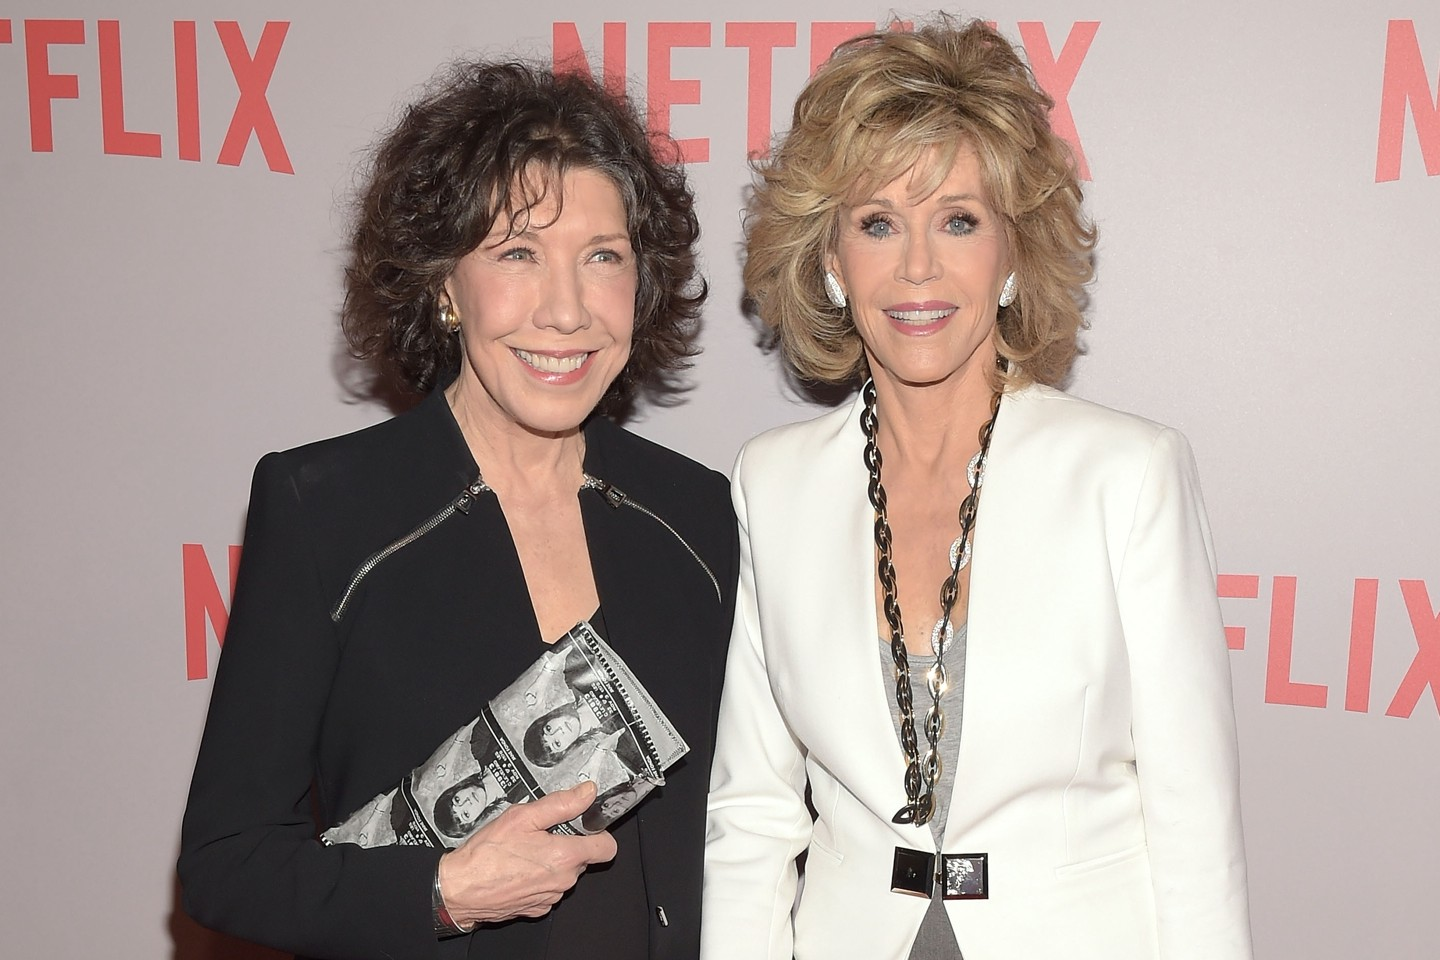 813e75a8553dde Lily Tomlin and Jane Fonda for Grace & Frankie. Image: Vanity Fair.